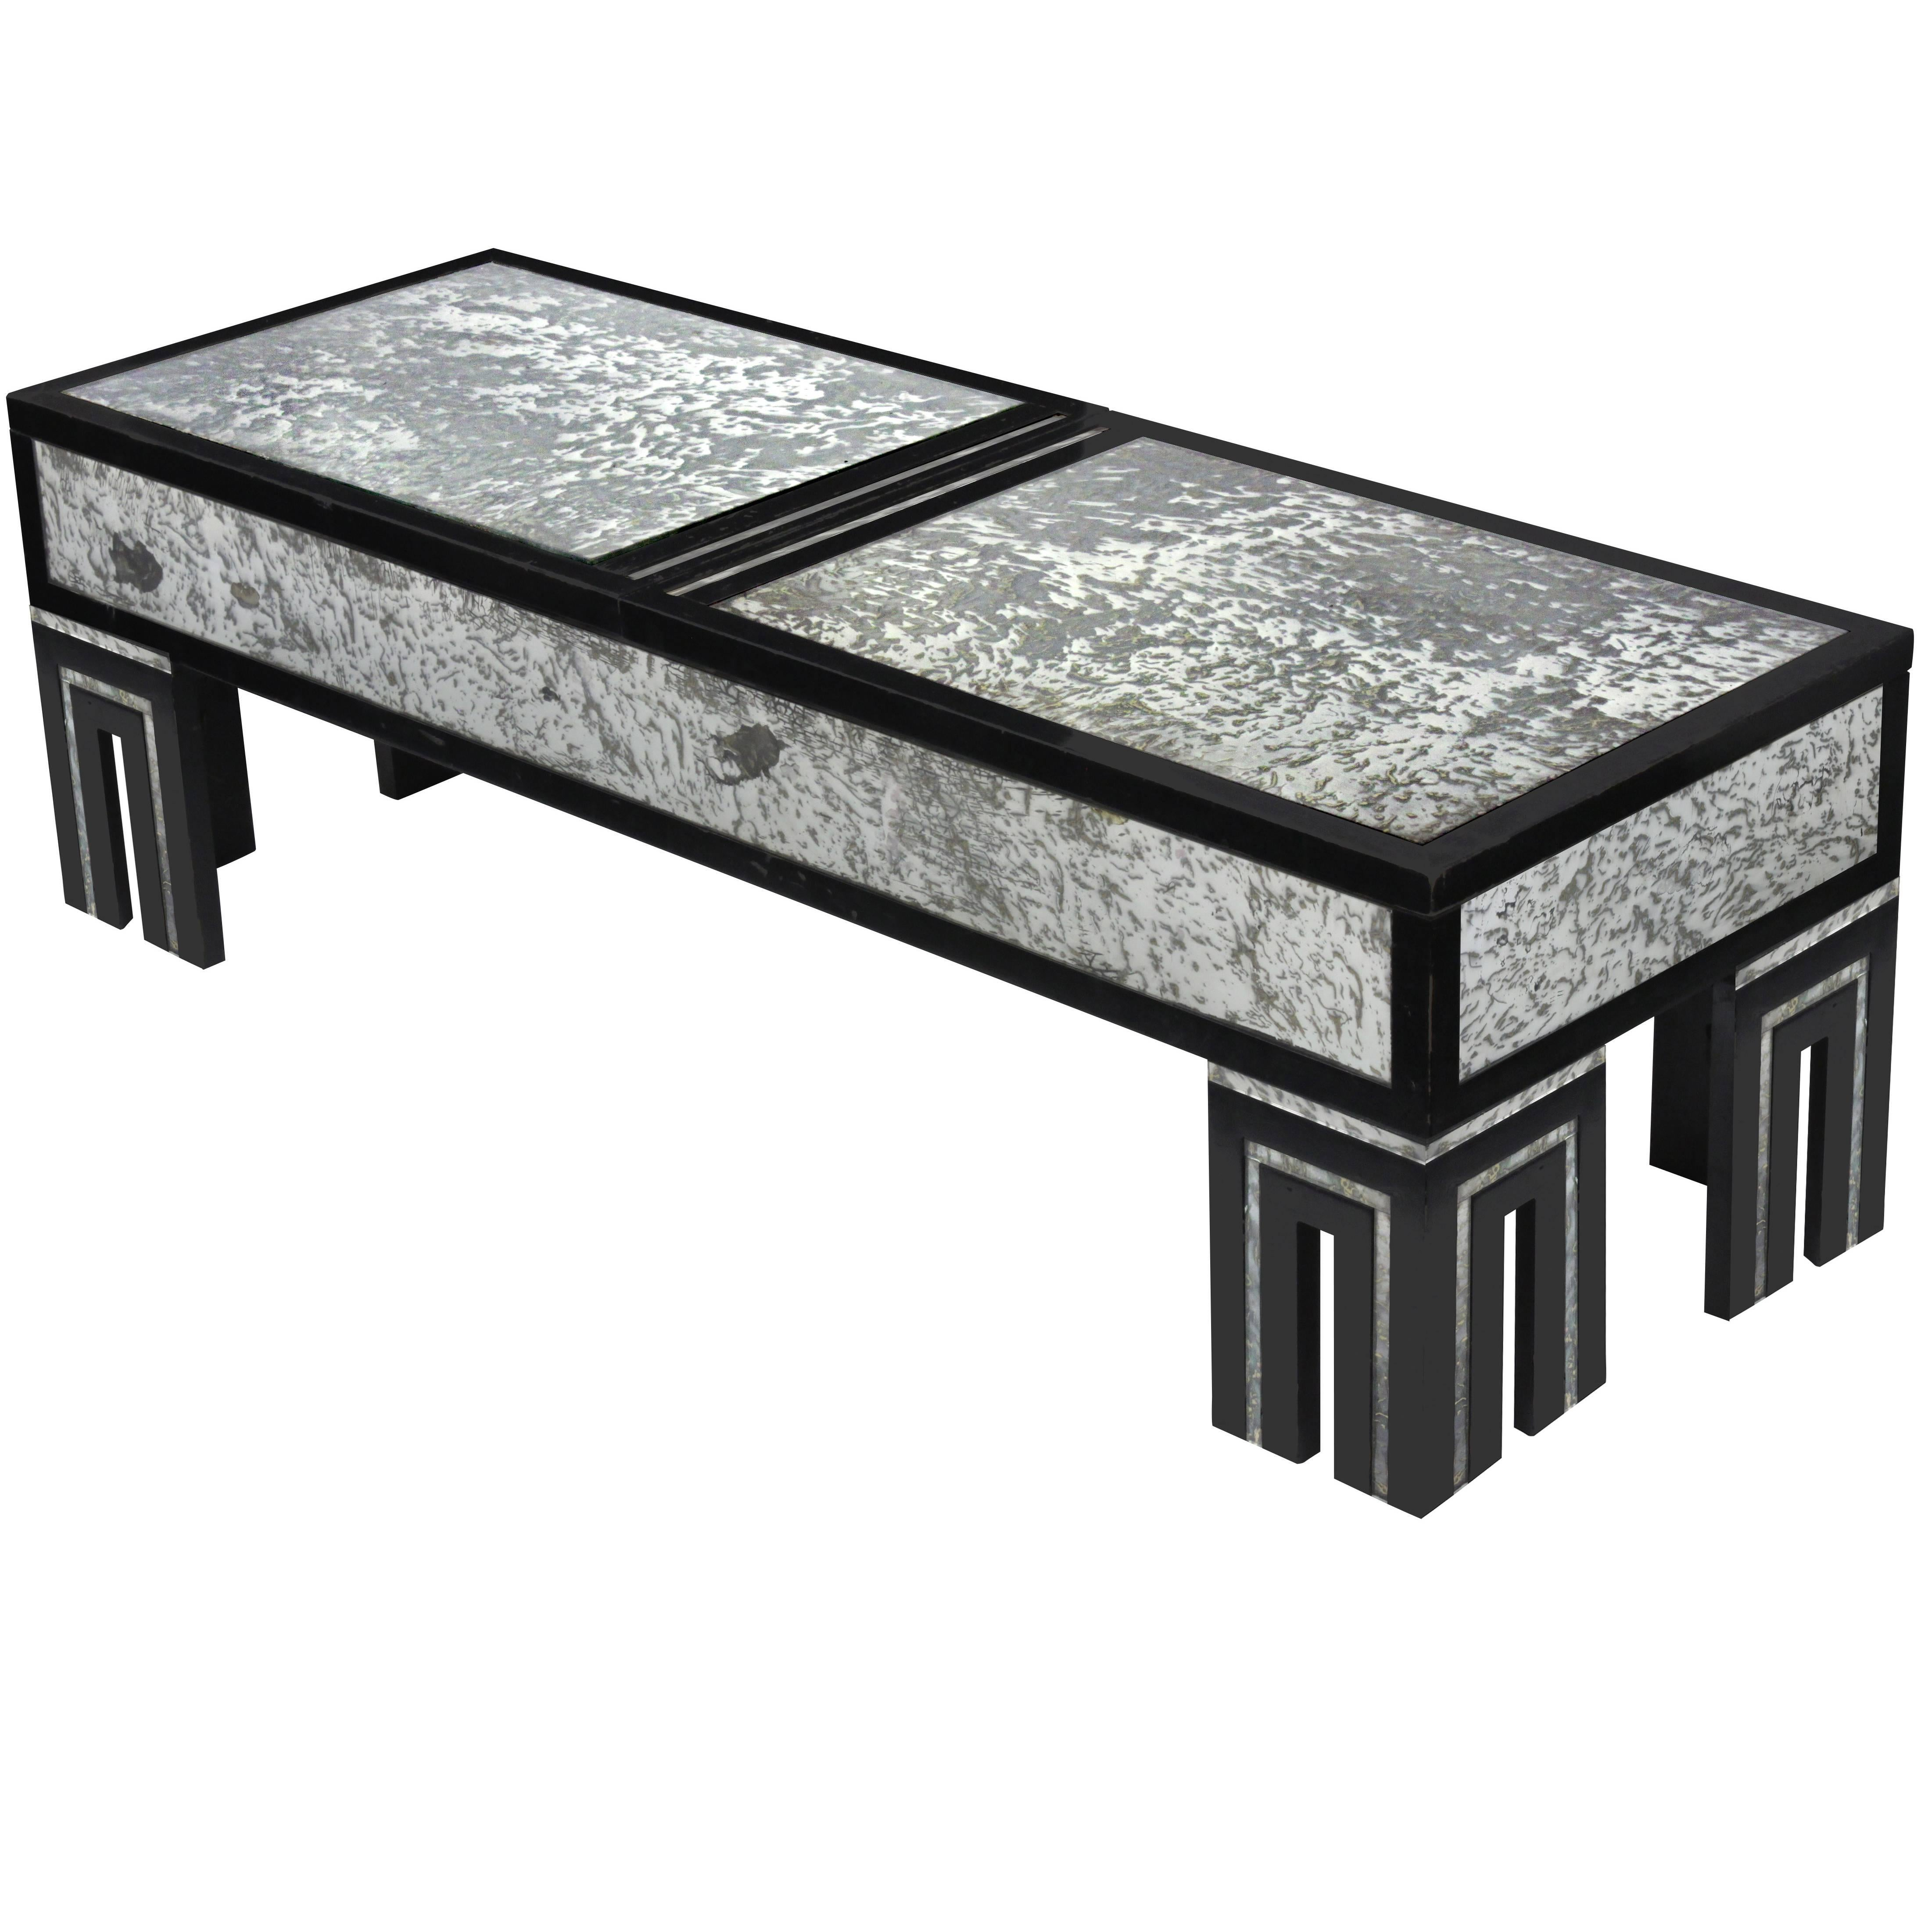 Ebonized Coffee Table with Mottled Antique Glass by James Mont